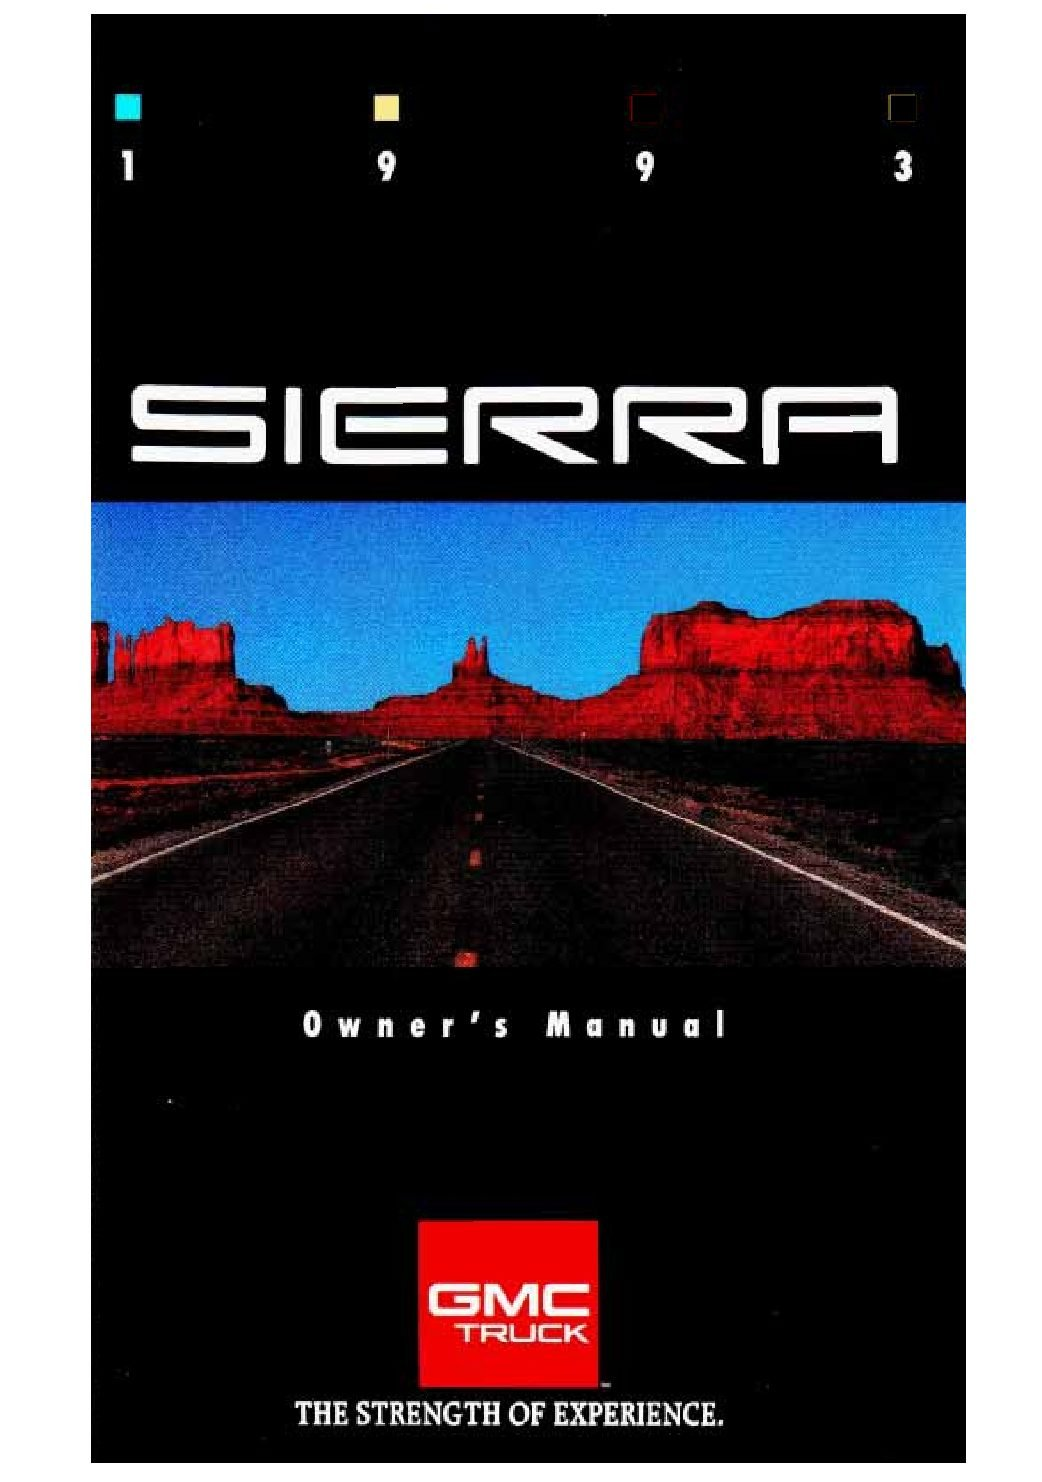 1993 gmc sierra owners manual just give me the damn manual rh justgivemethedamnmanual com 1993 gmc sierra repair manual pdf 1993 gmc 1500 owners manual